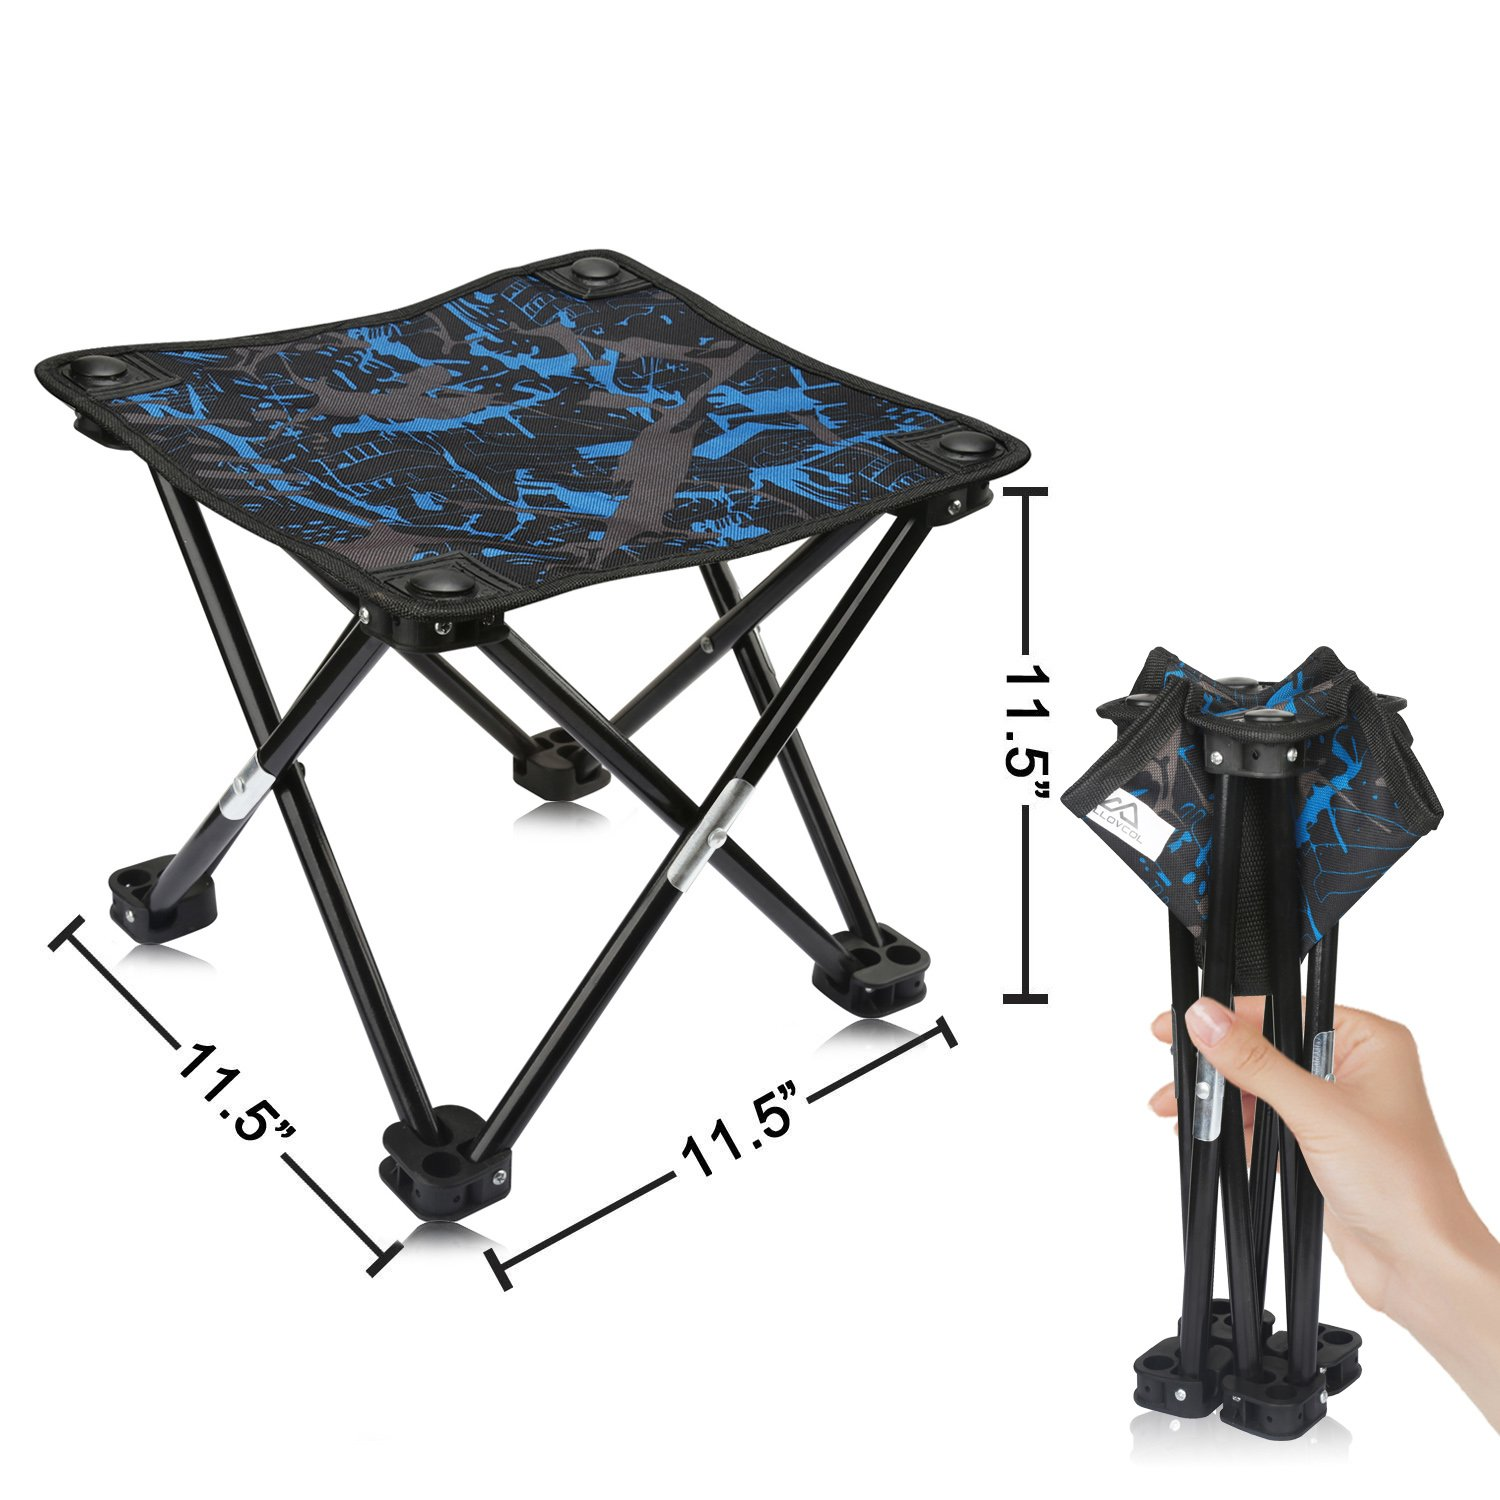 Ultralight Aluminum Alloy Foldable Four Corners Chair Camouflage Outdoor Stool Chair Seat Camping Hiking Fishing Bbq Tools Bbq